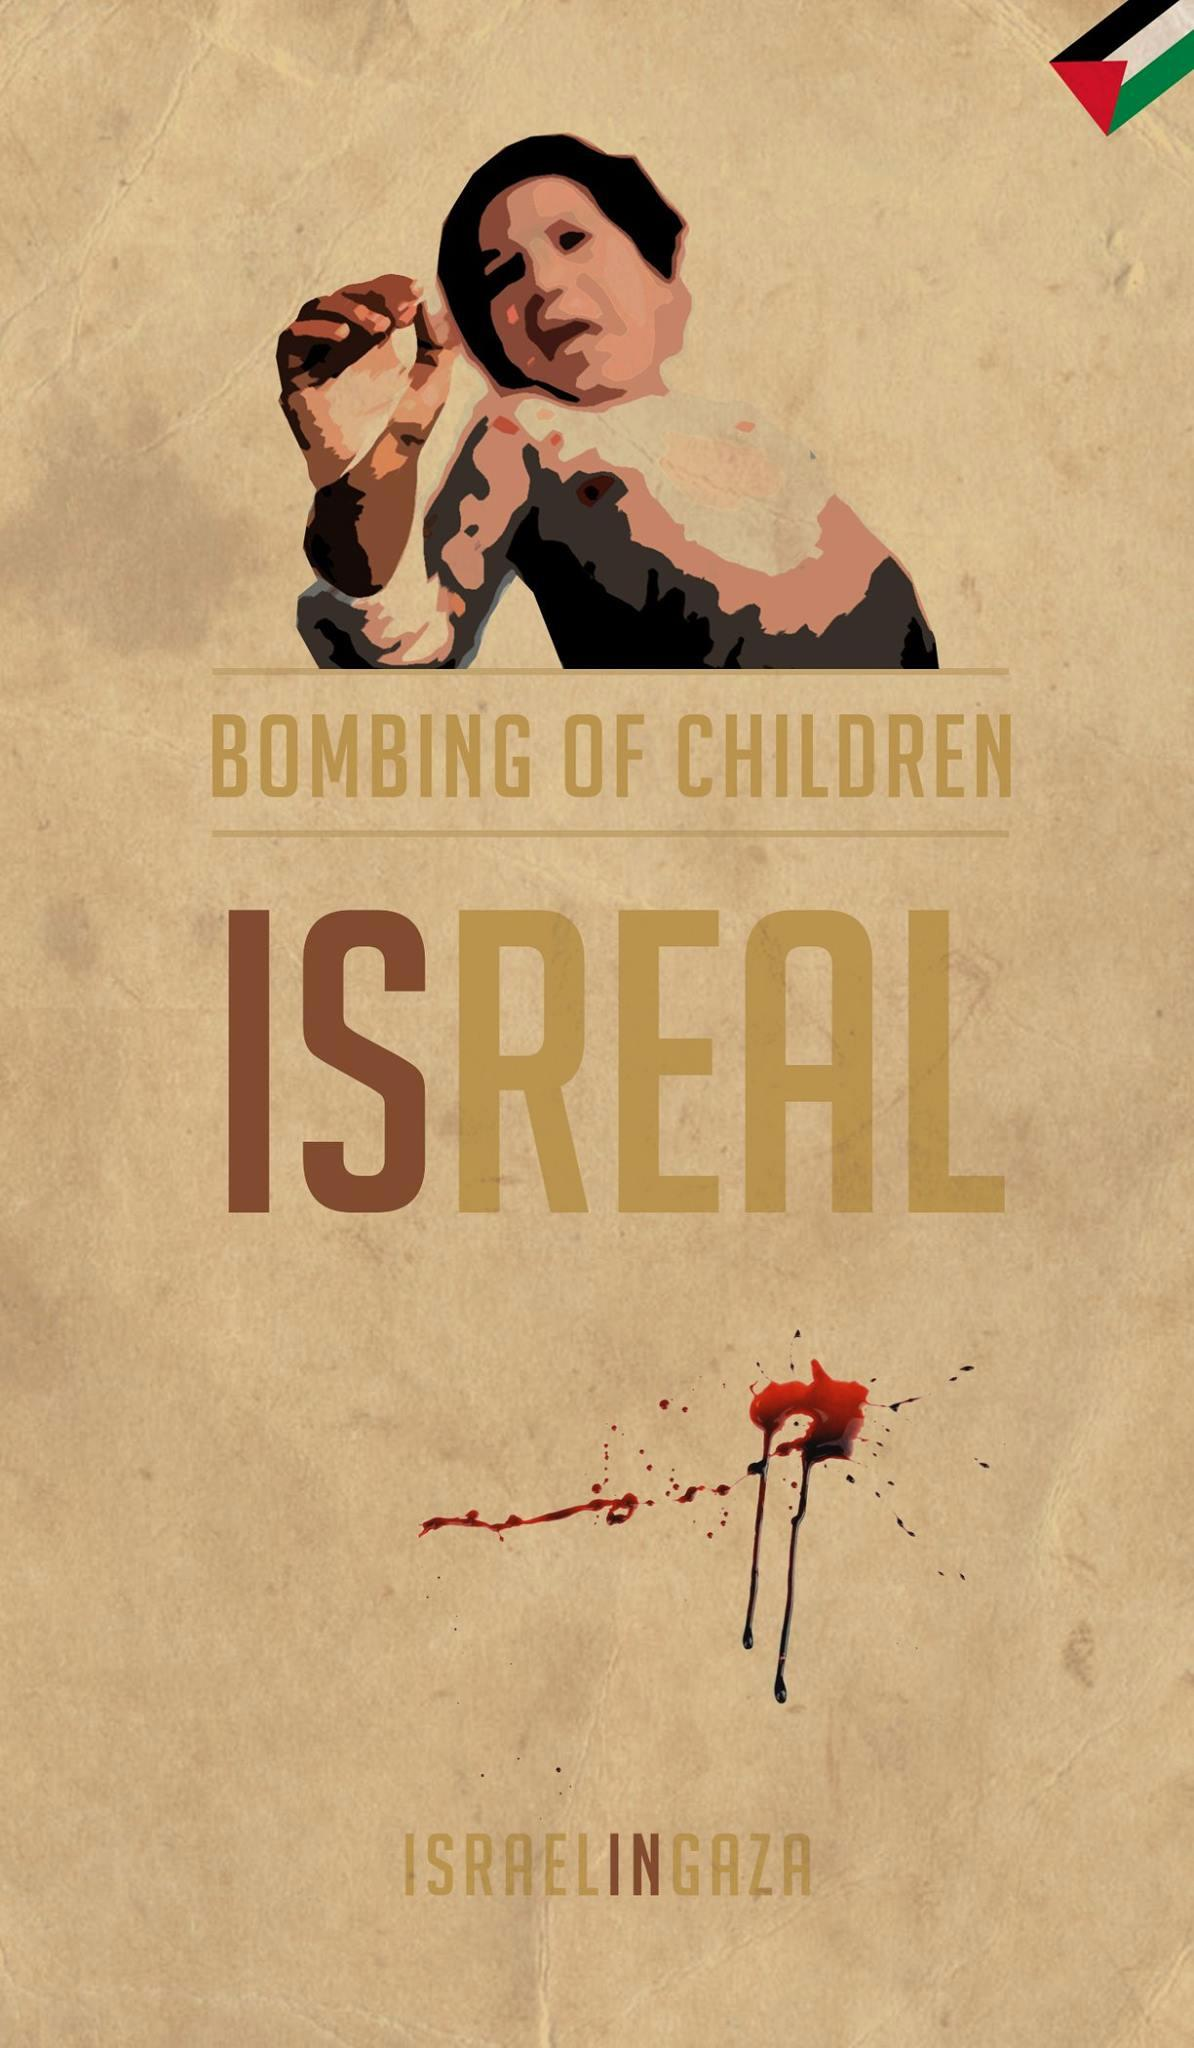 IsReal ! by João Pico @ComprimidoPT #Israel in #Gaza #SavePalestine #GazaUnderAttack http://t.co/owrwhYdi0B